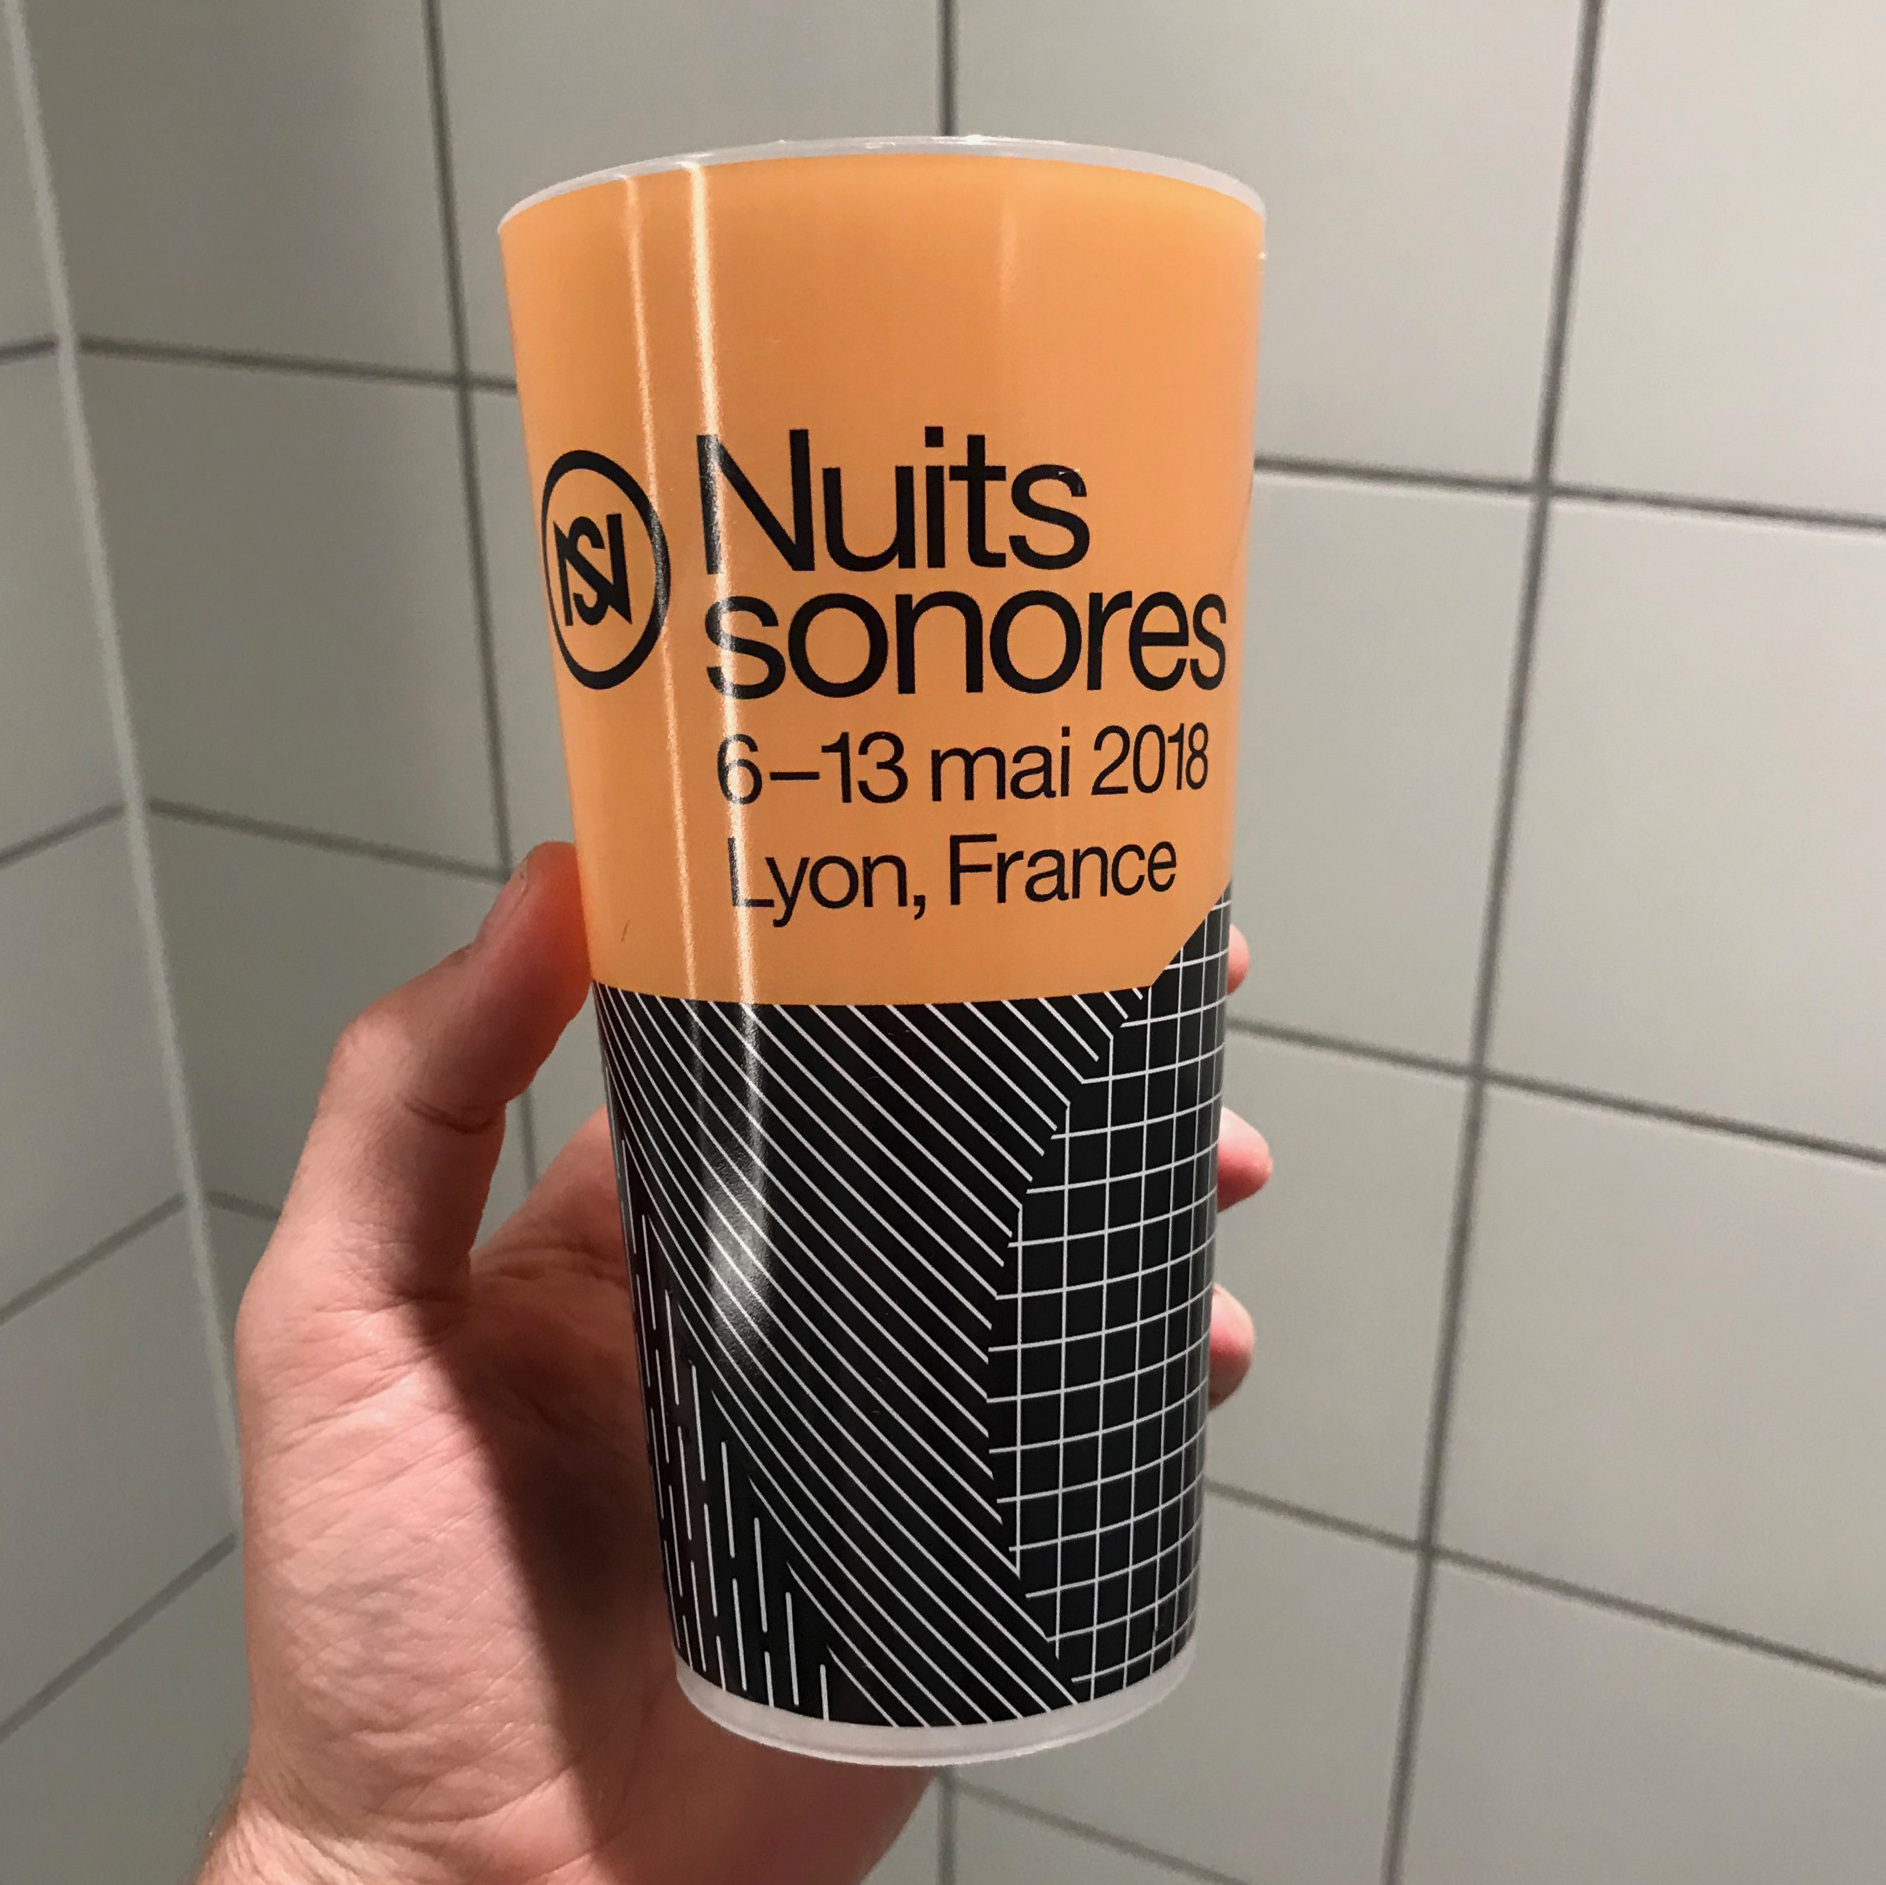 Nuits Sonores-cup.jpg